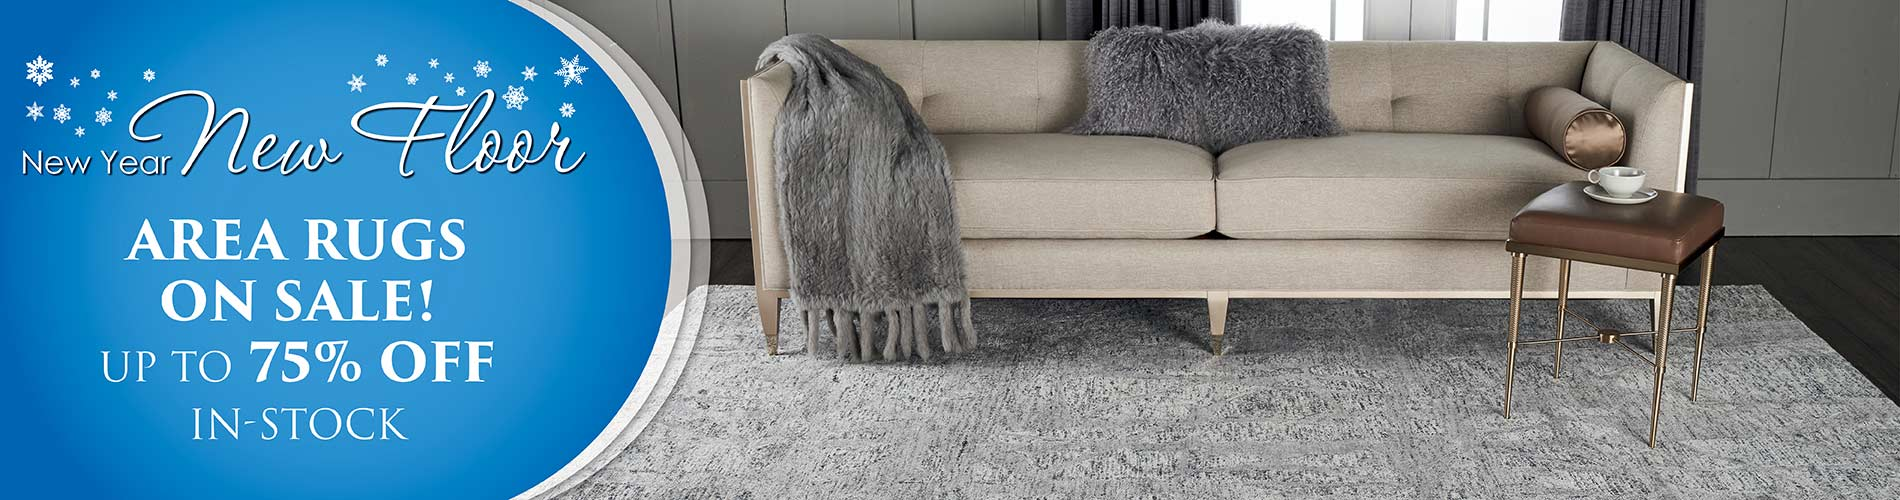 New Year New Flor Sale Going On Now! In-stock area rugs on sale up to 75% off